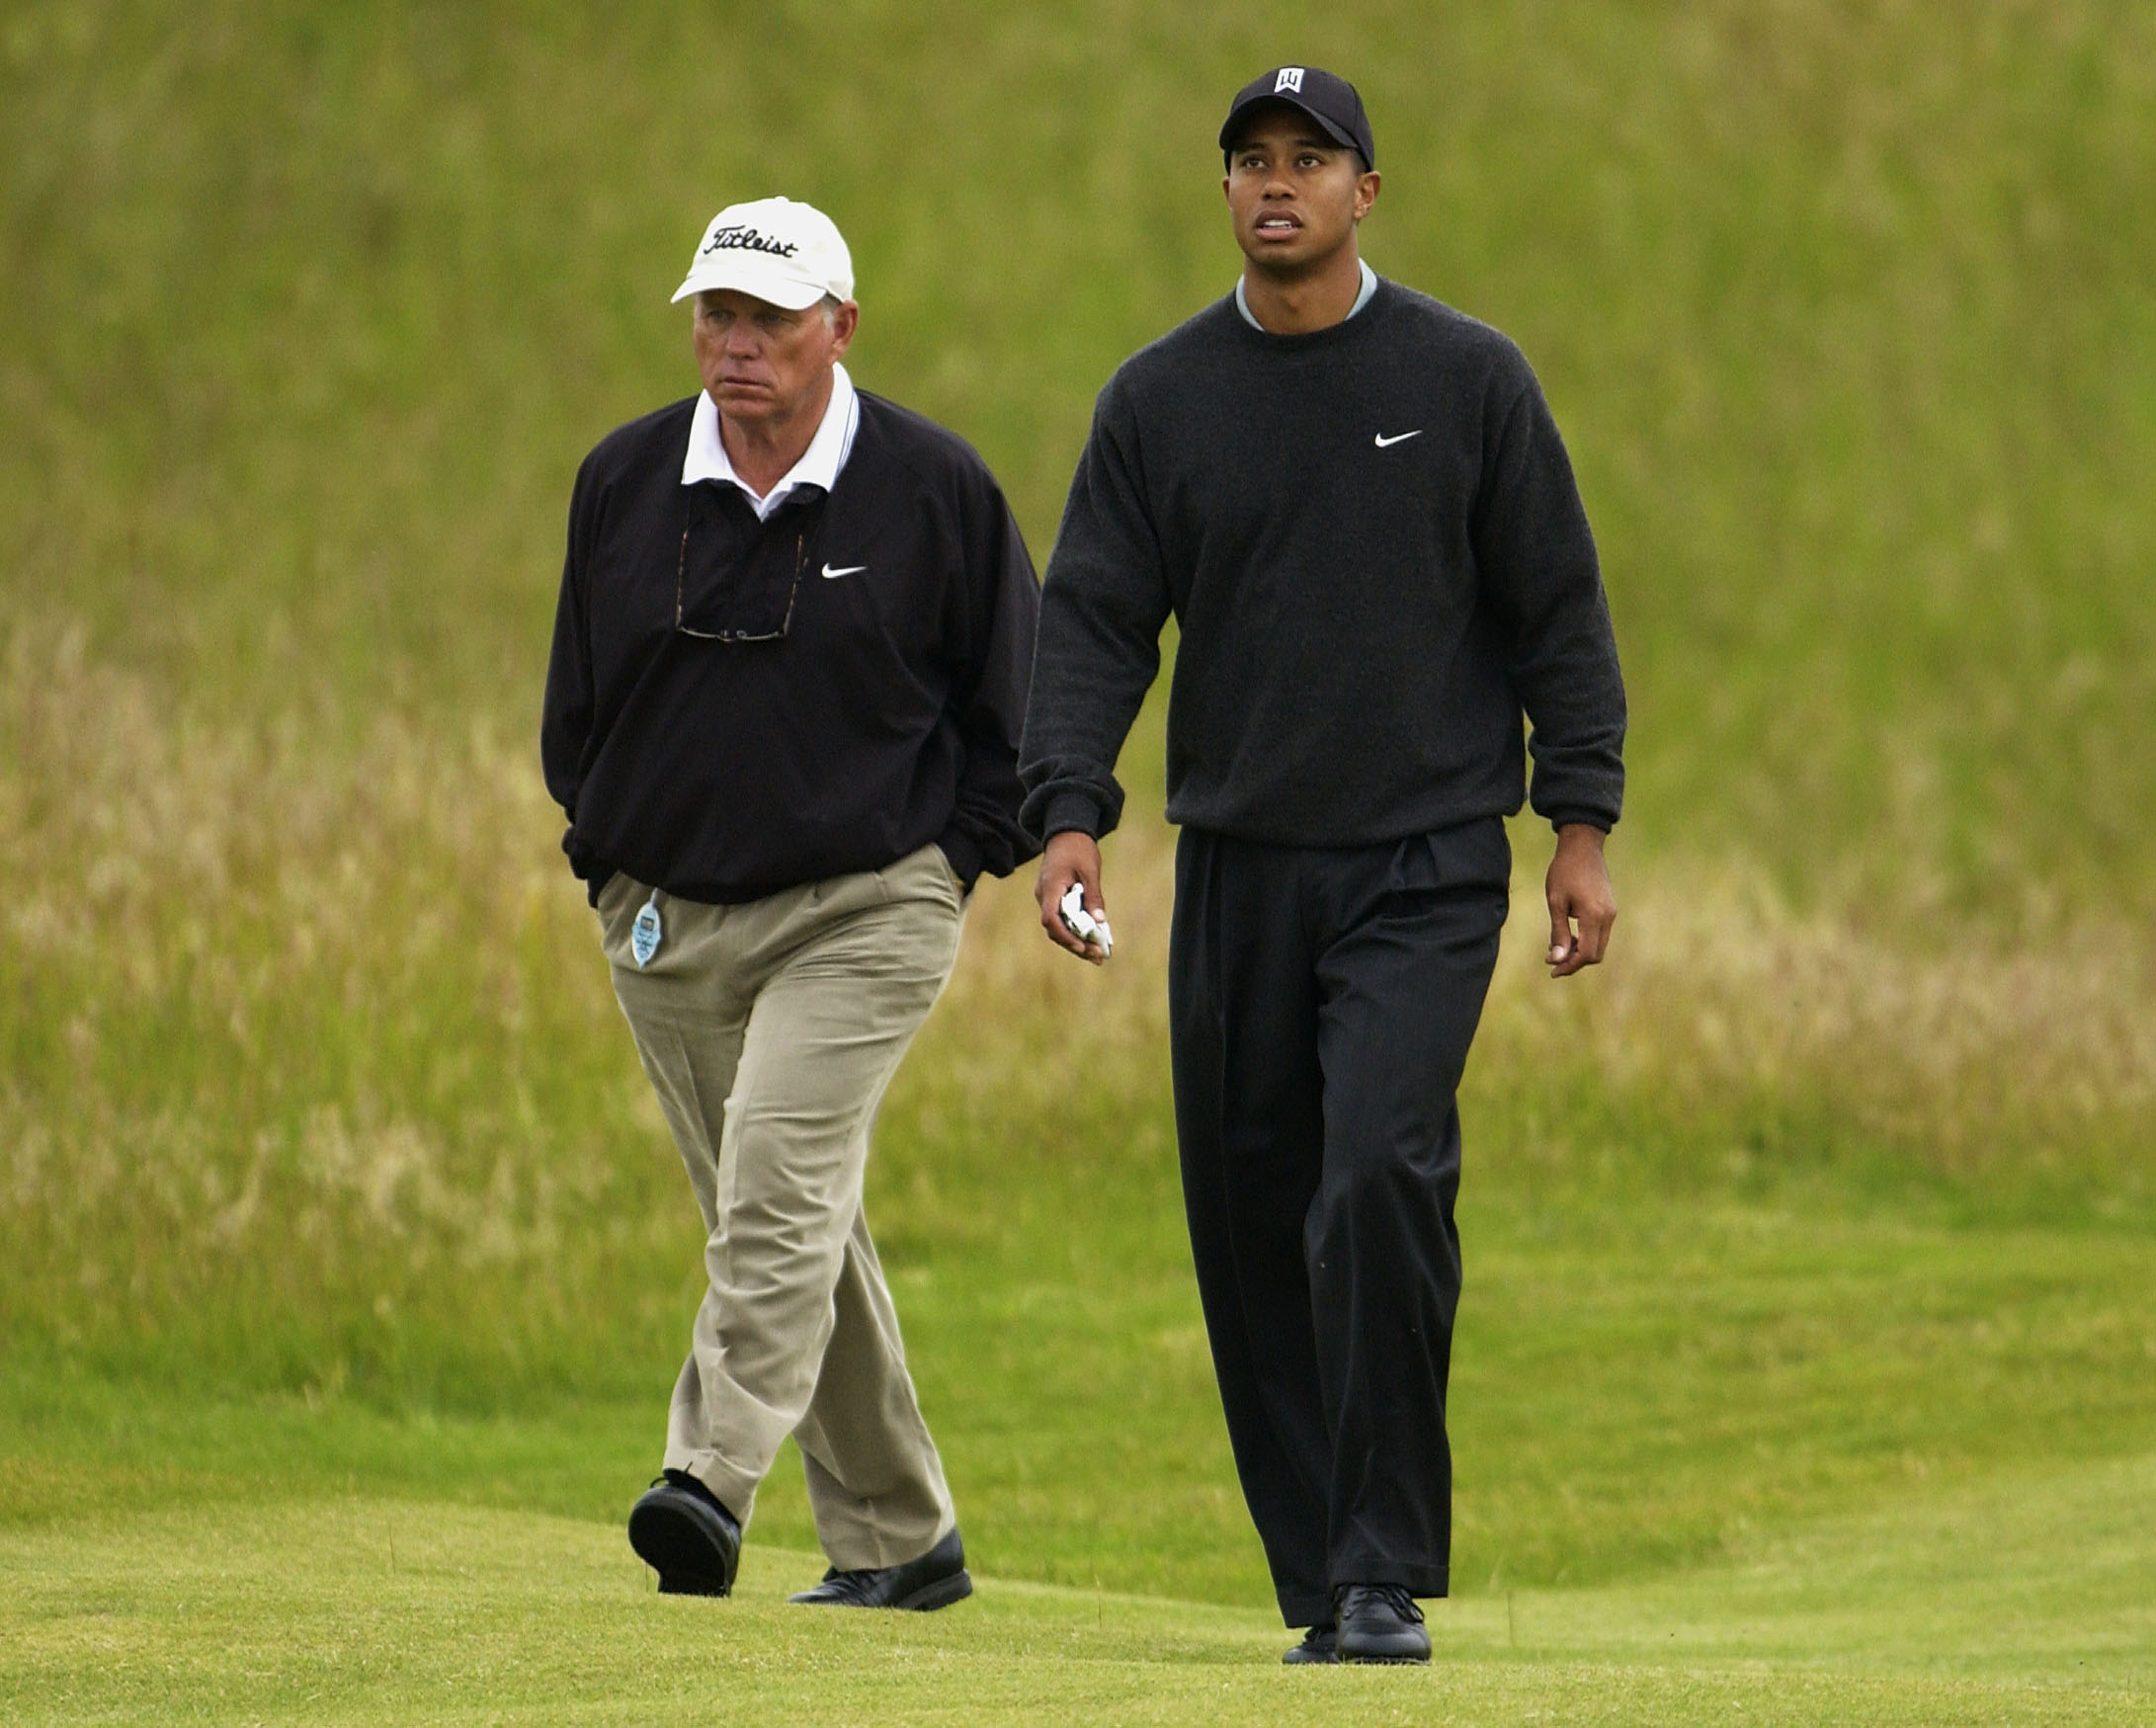 Tiger Woods and Butch Harmon walk the sixth fairway during a practice round for the 131st Open Championships at Muirfield Golf Club in Gullane, Scotland, on July 16, 2002.